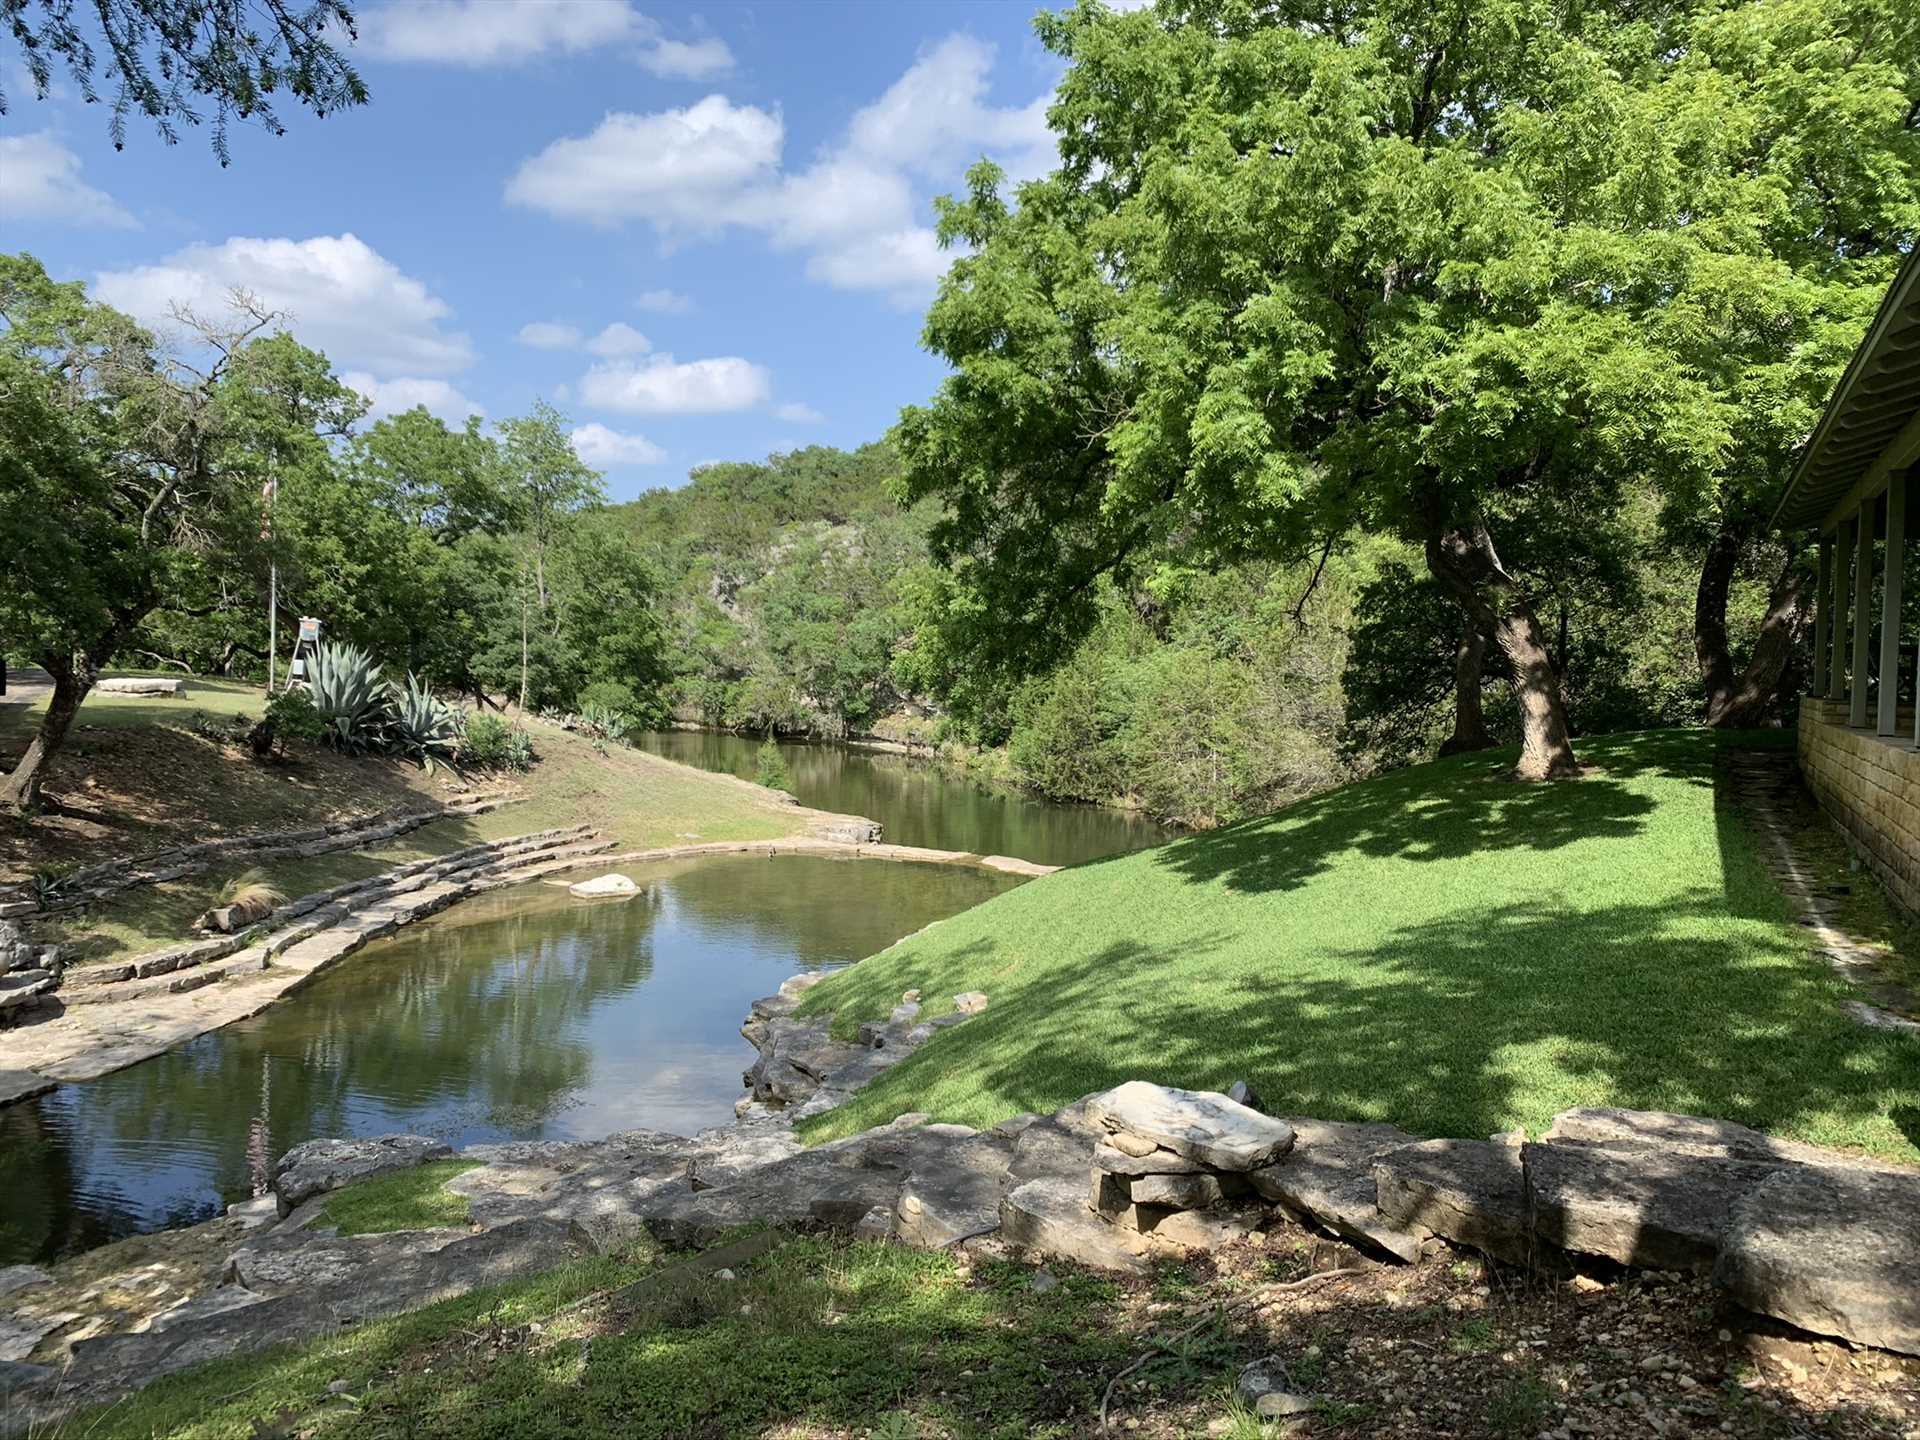 Hike, watch wildlife, and practice catch-and-release fishing along the banks of pretty Fall Creek!